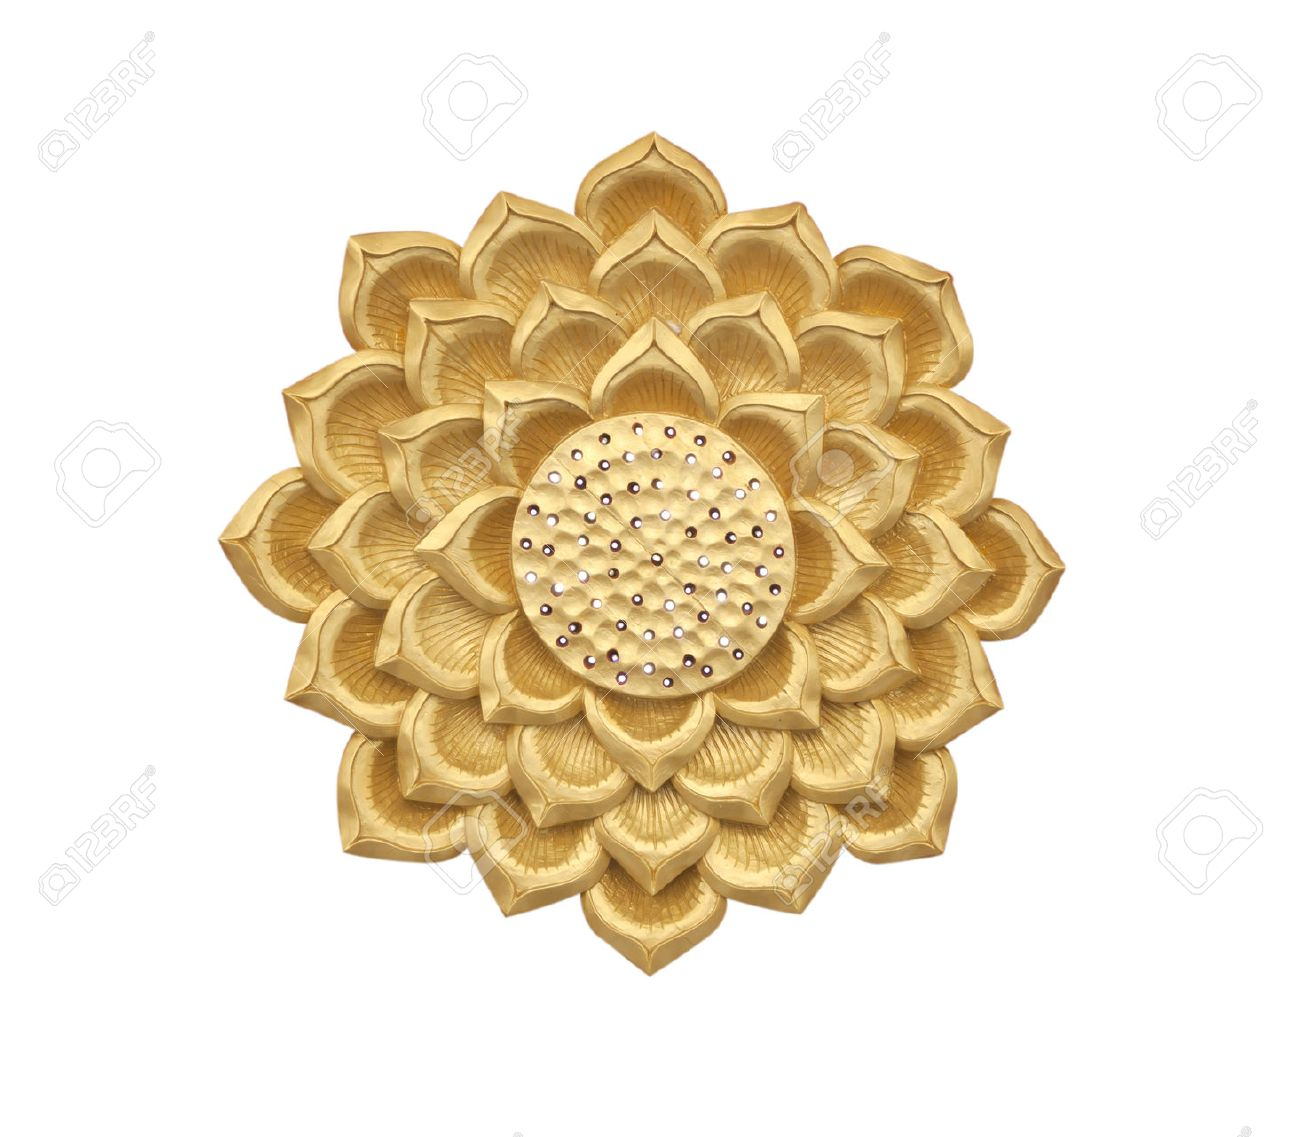 Wood Carving Stock Photos. Royalty Free Business Images